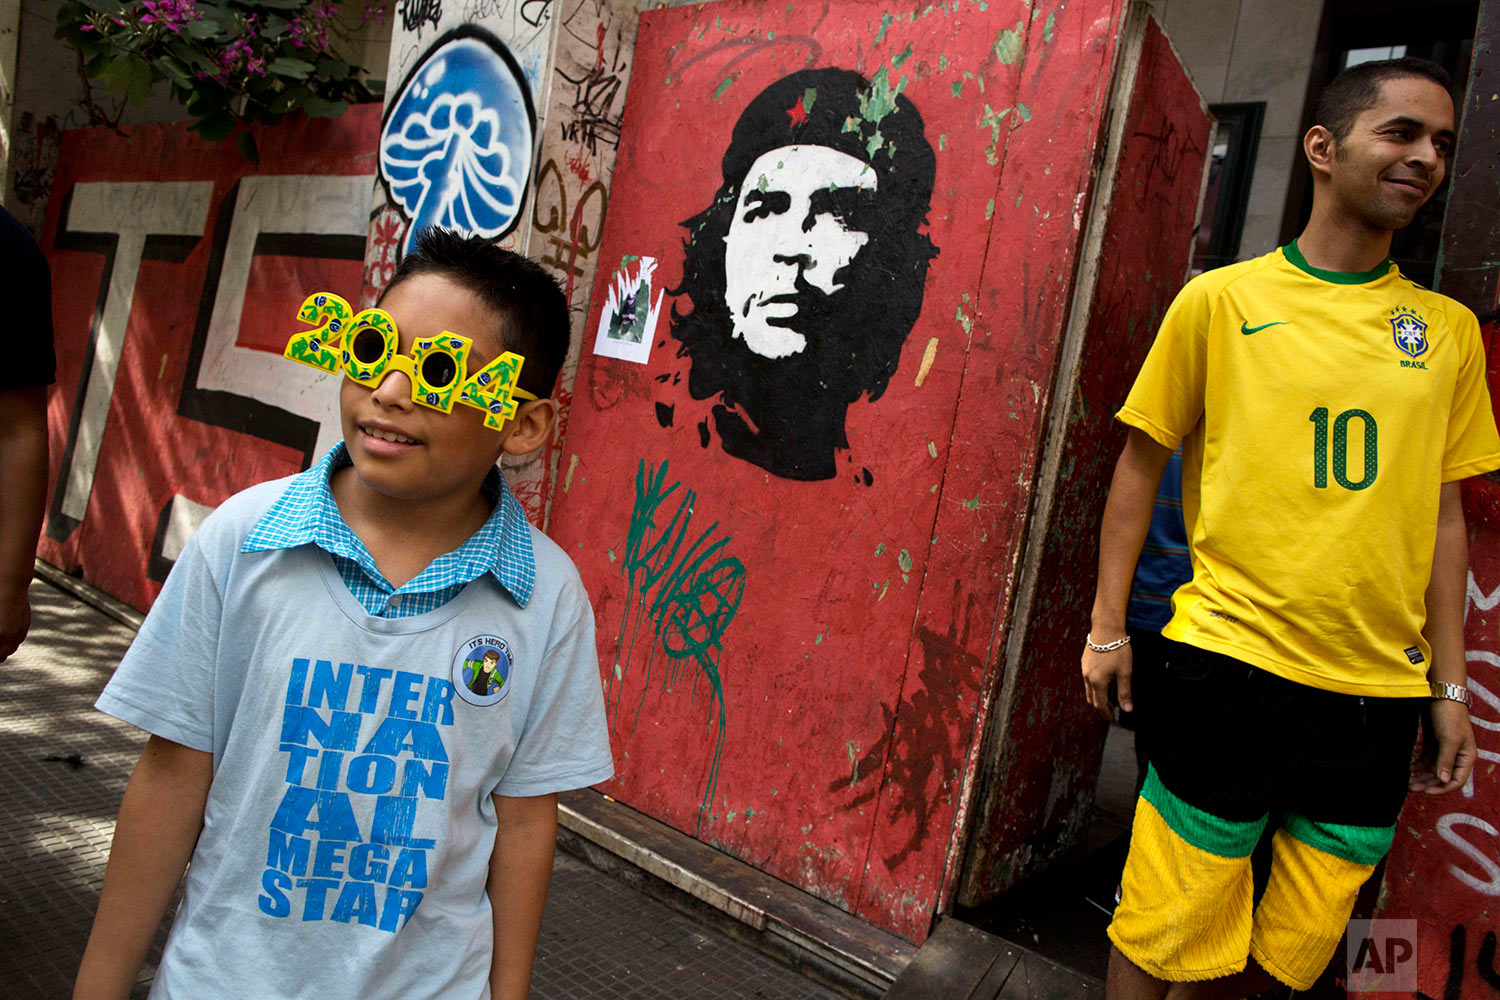 Fans of Brazil stand next to a wall painted with a portrait of famous revolutionary hero Ernesto Che Guevara before the Chile vs. Brazil match during the 2014 soccer World Cup in Sao Paulo, Brazil, Saturday, June 28, 2014.(AP Photo/Rodrigo Abd)